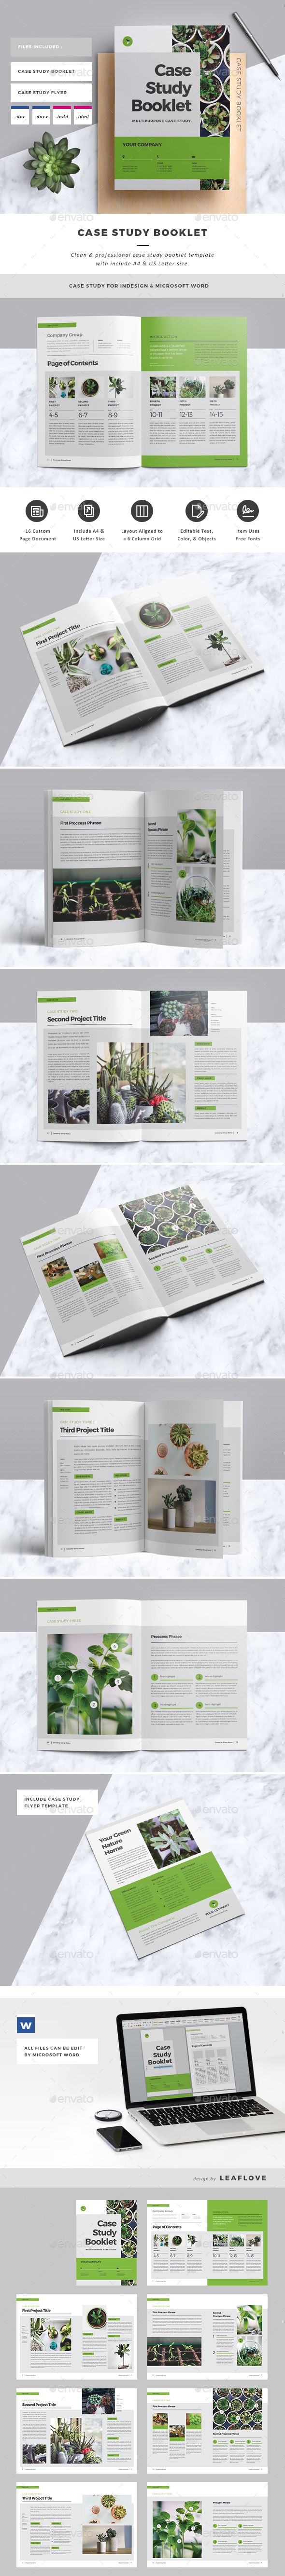 Case Study Booklet   Booklet template, Template and Layouts